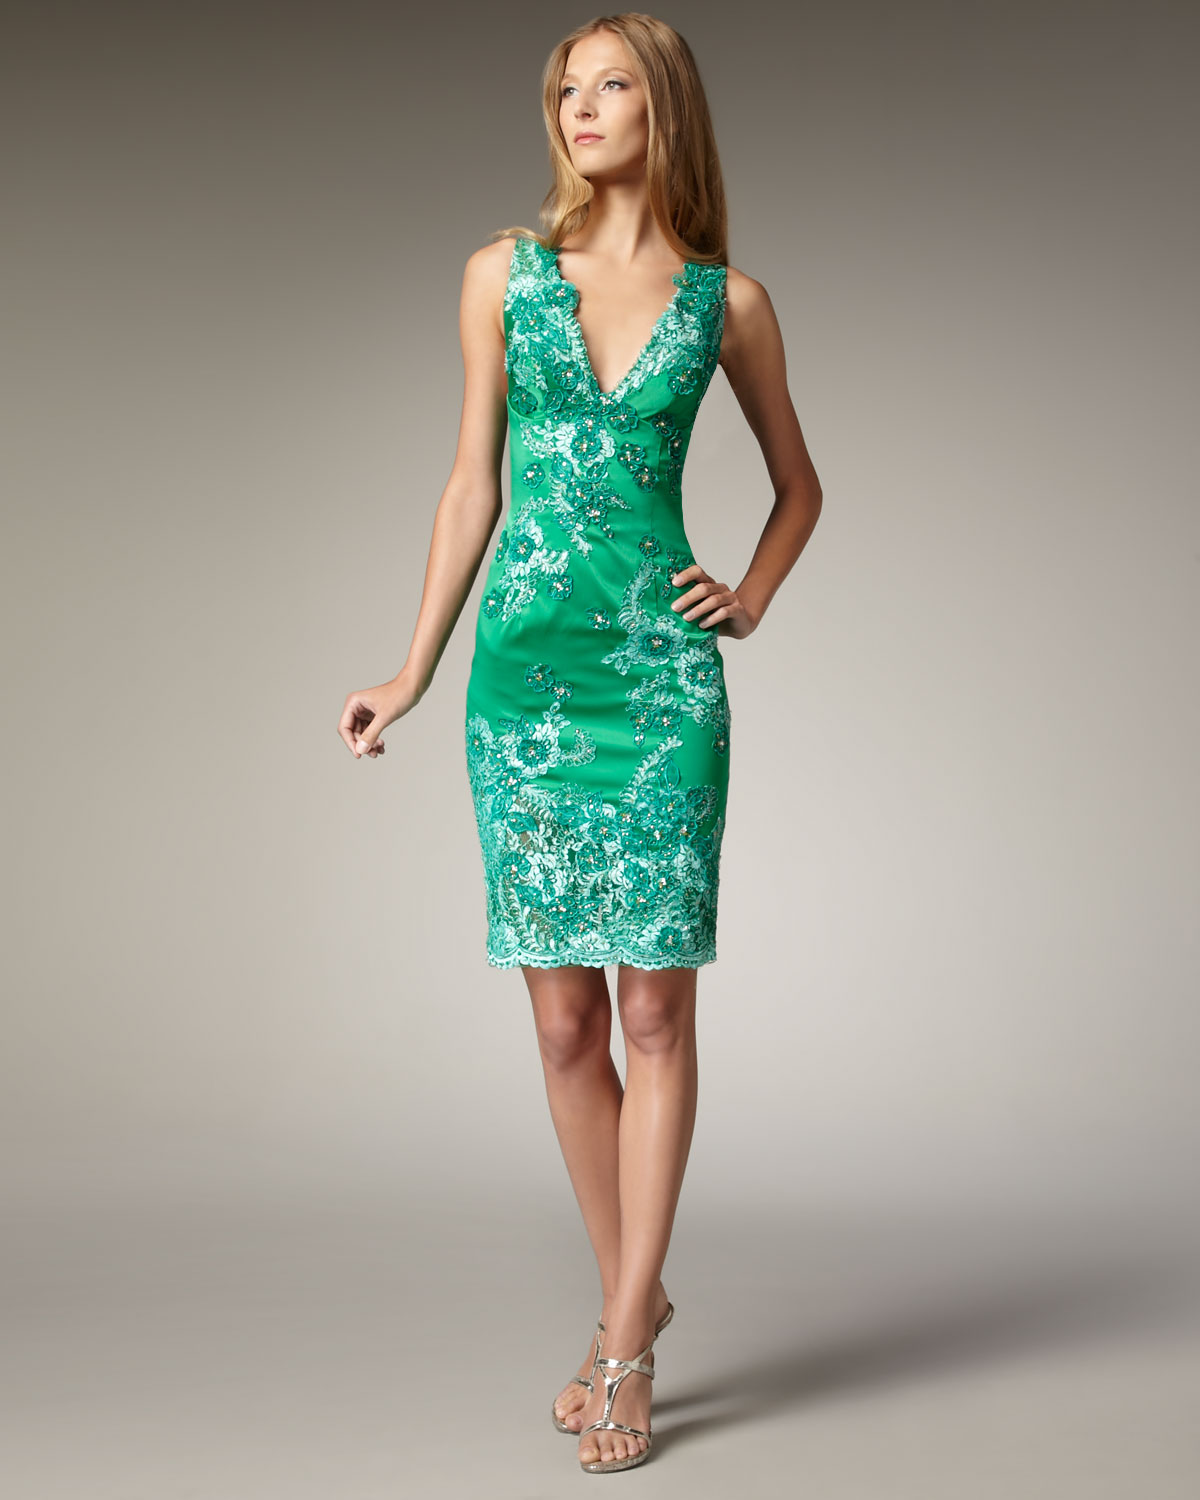 Lace kelly green dress